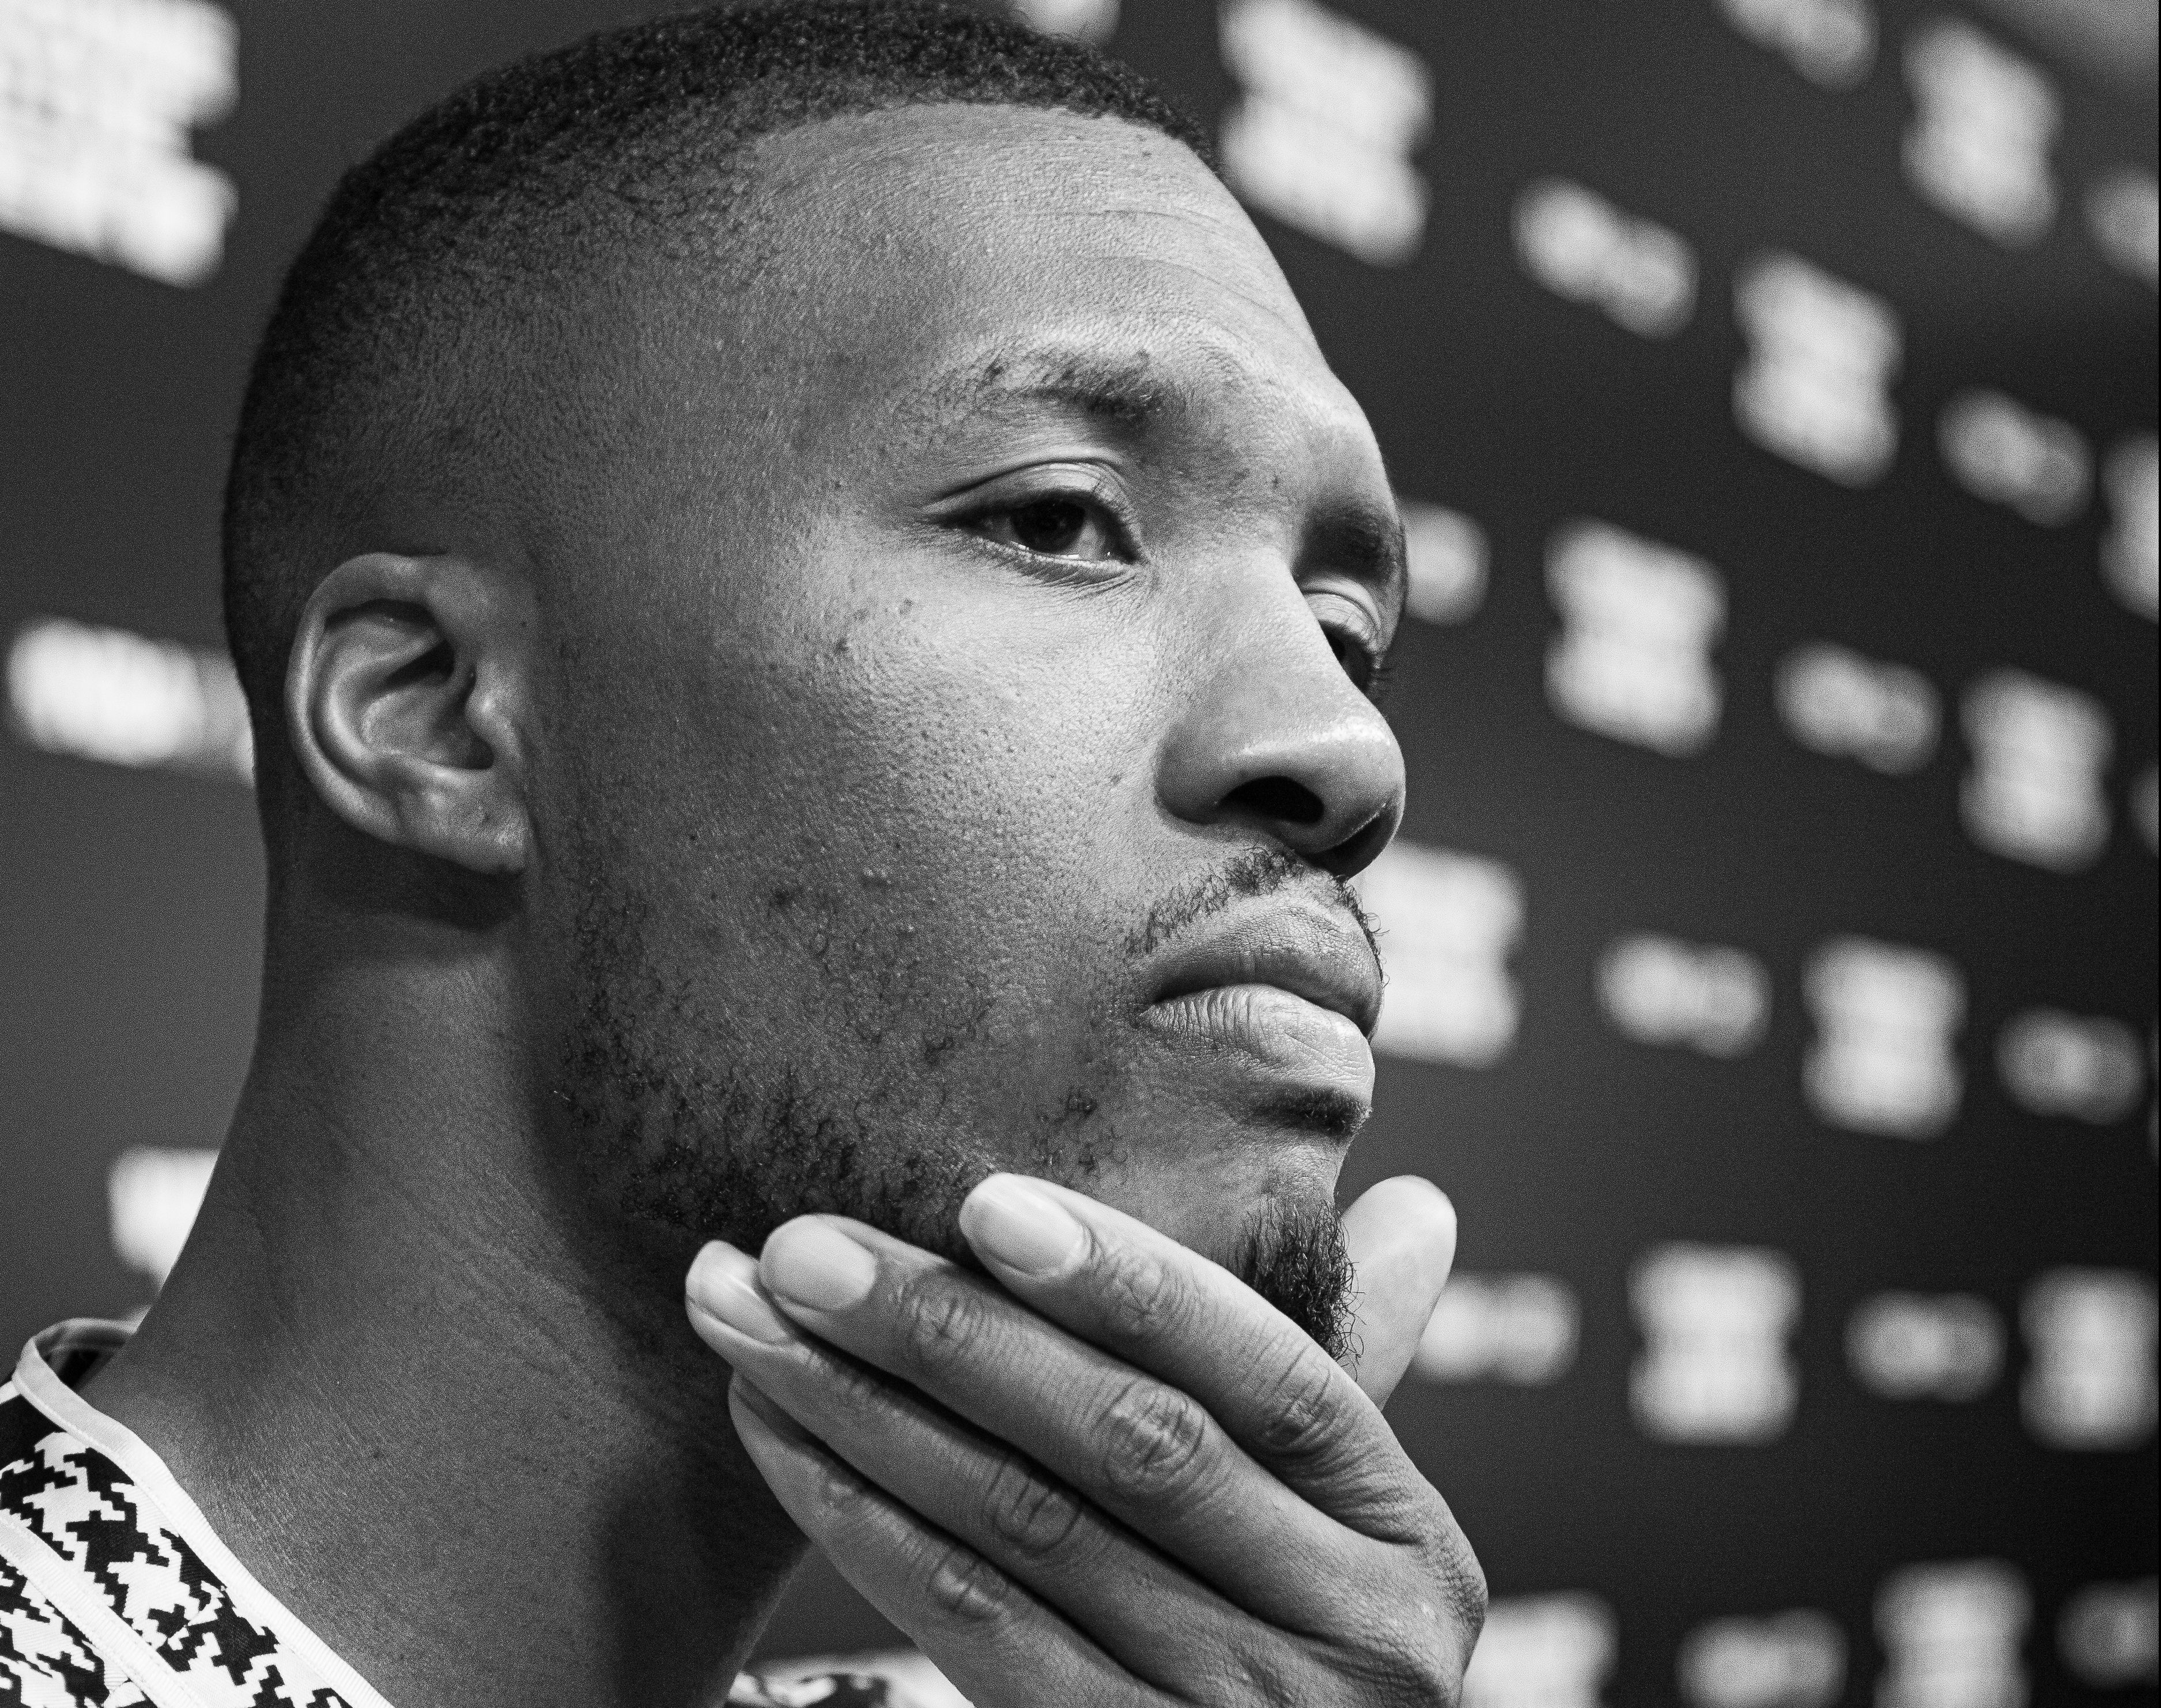 Damian Lillard Revealed As Cover Athlere For Current-Gen 'NBA 2K21'